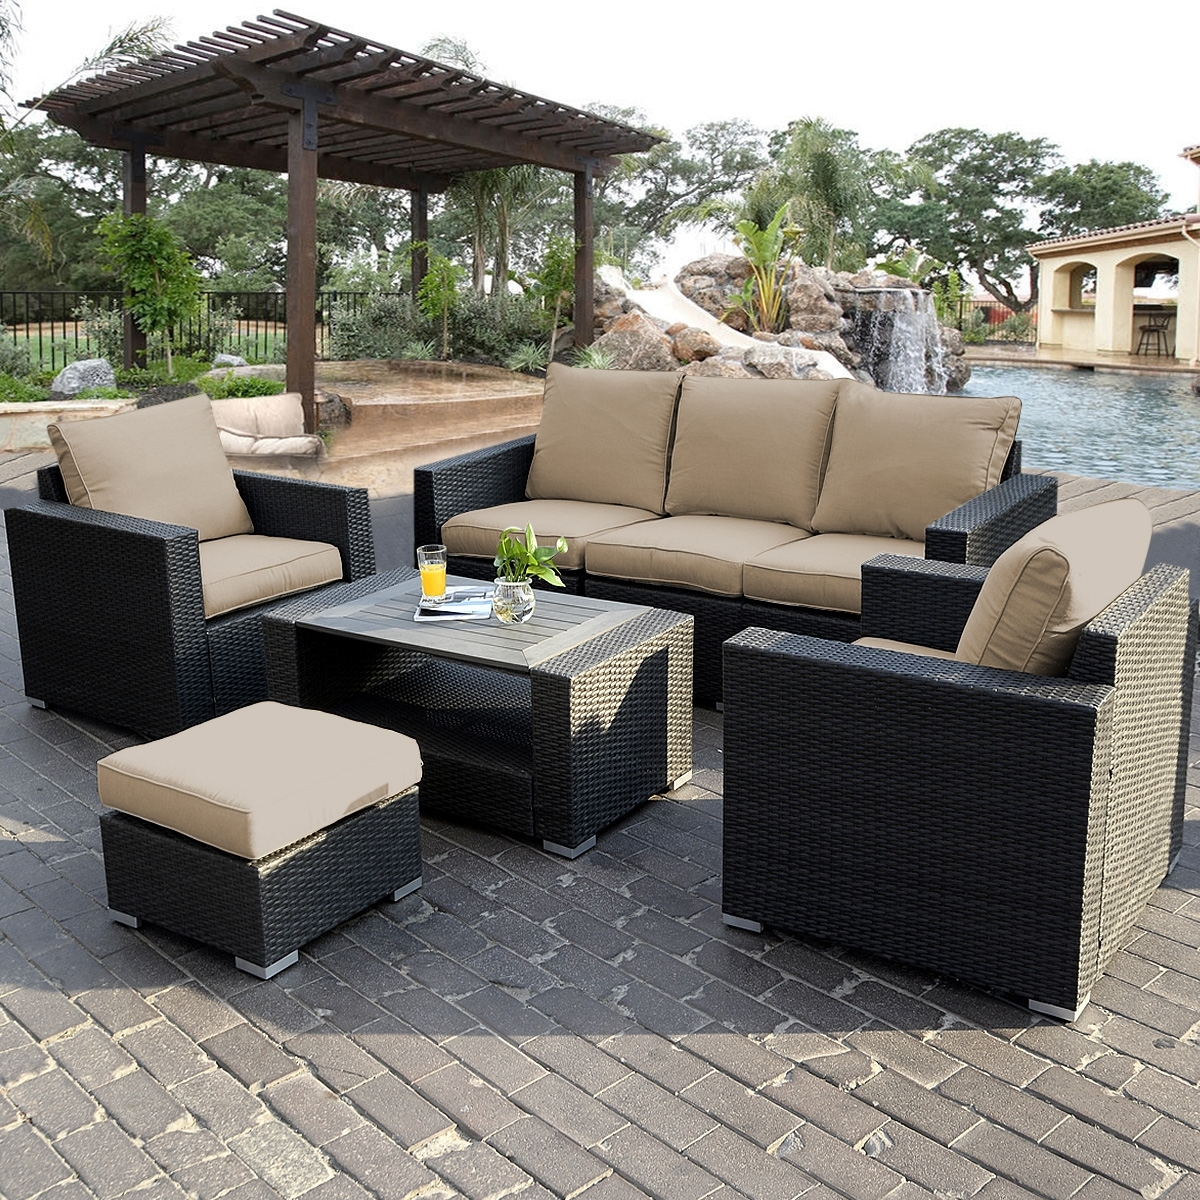 Patio & Garden : Eucalyptus Sectional Patio Furniture Patio For Patio Sofas (Image 9 of 10)